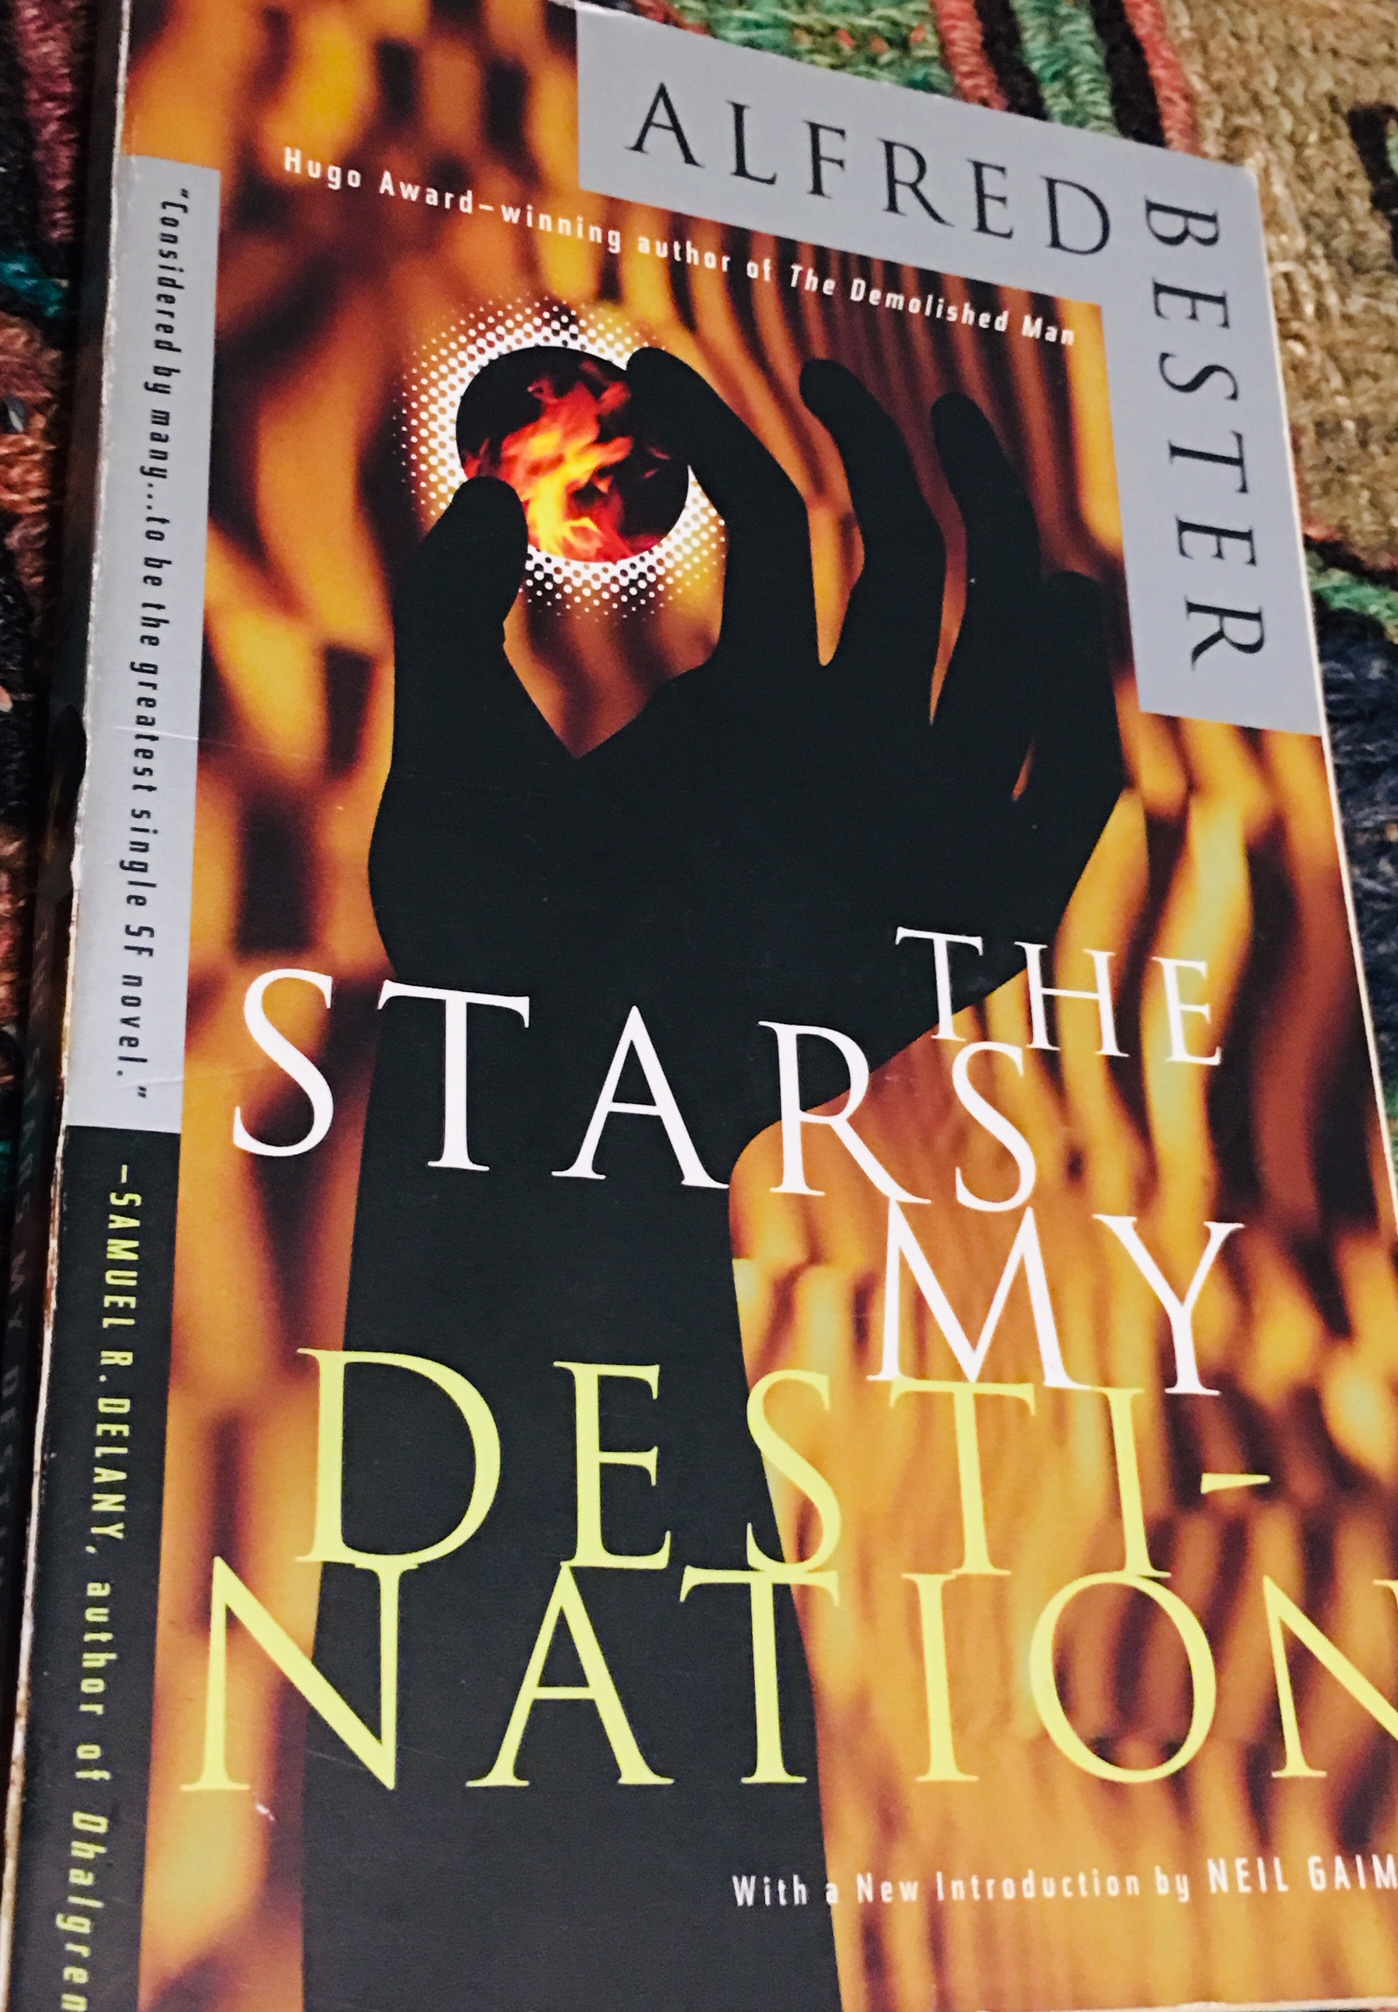 the stars my destination alfred bester